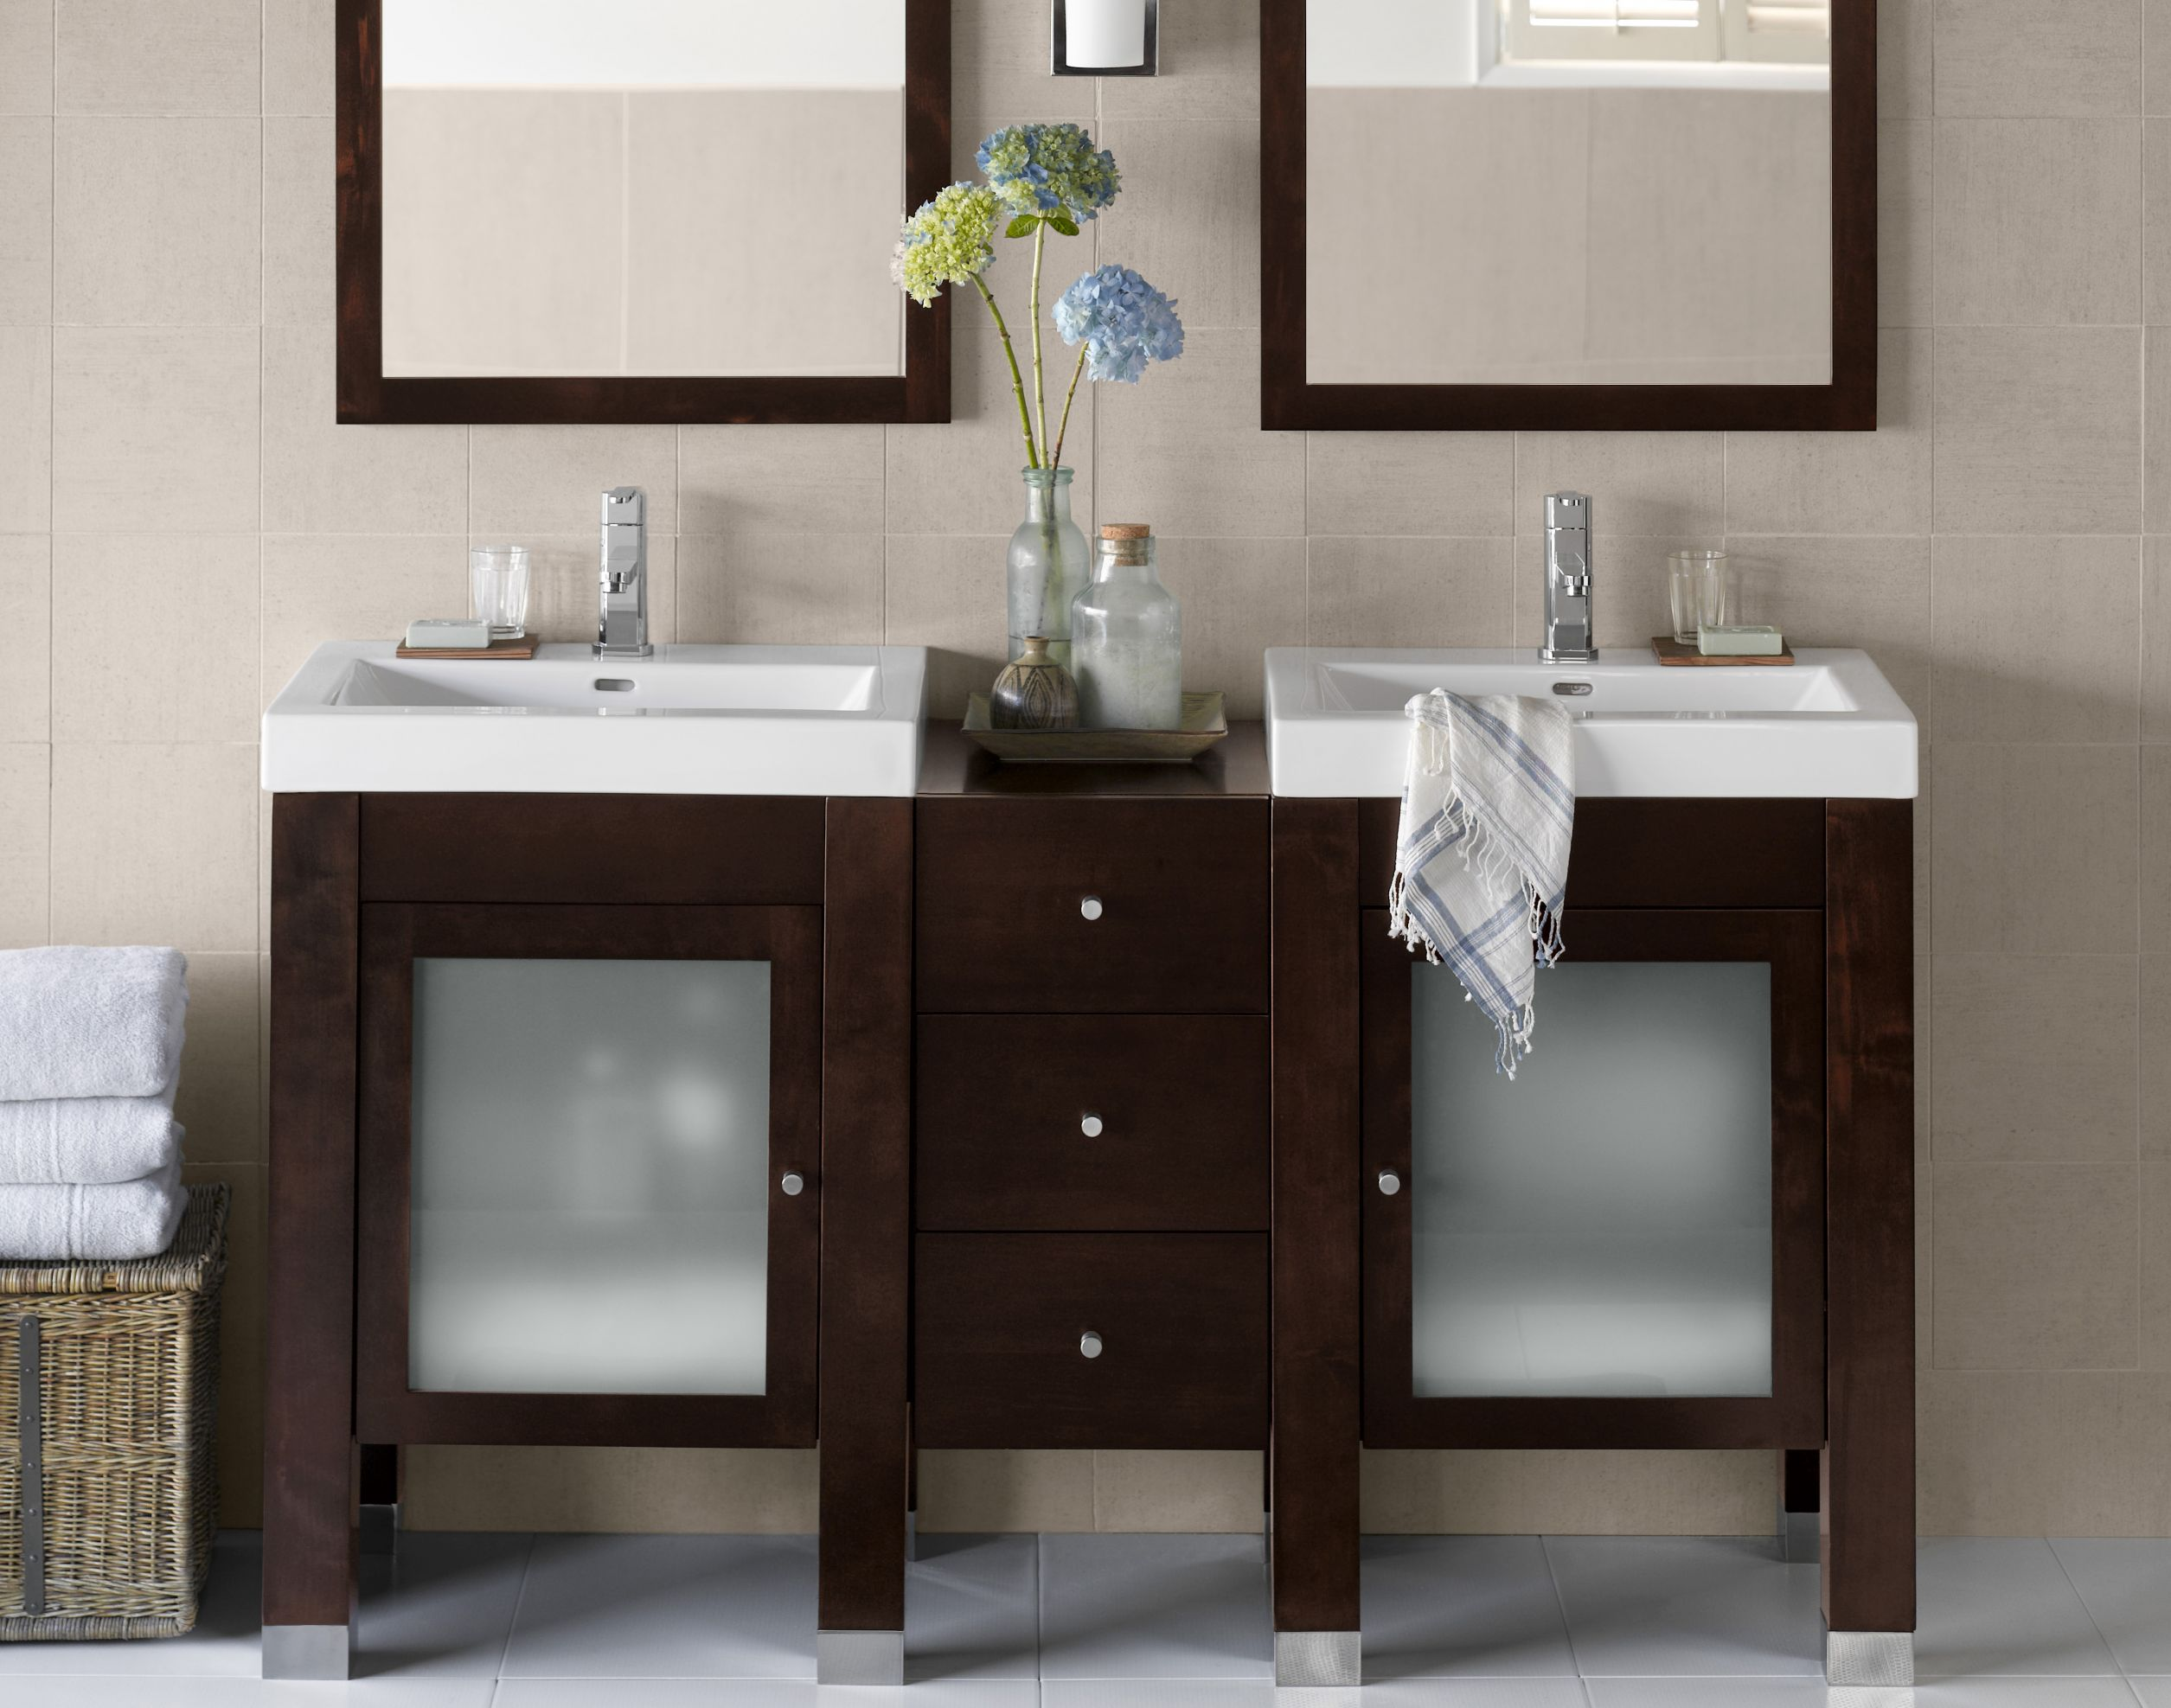 Remarkable mirabelle sinks with Golden Frame Mirror Design And Single Sink for bathroom with mirabelle undermount sink